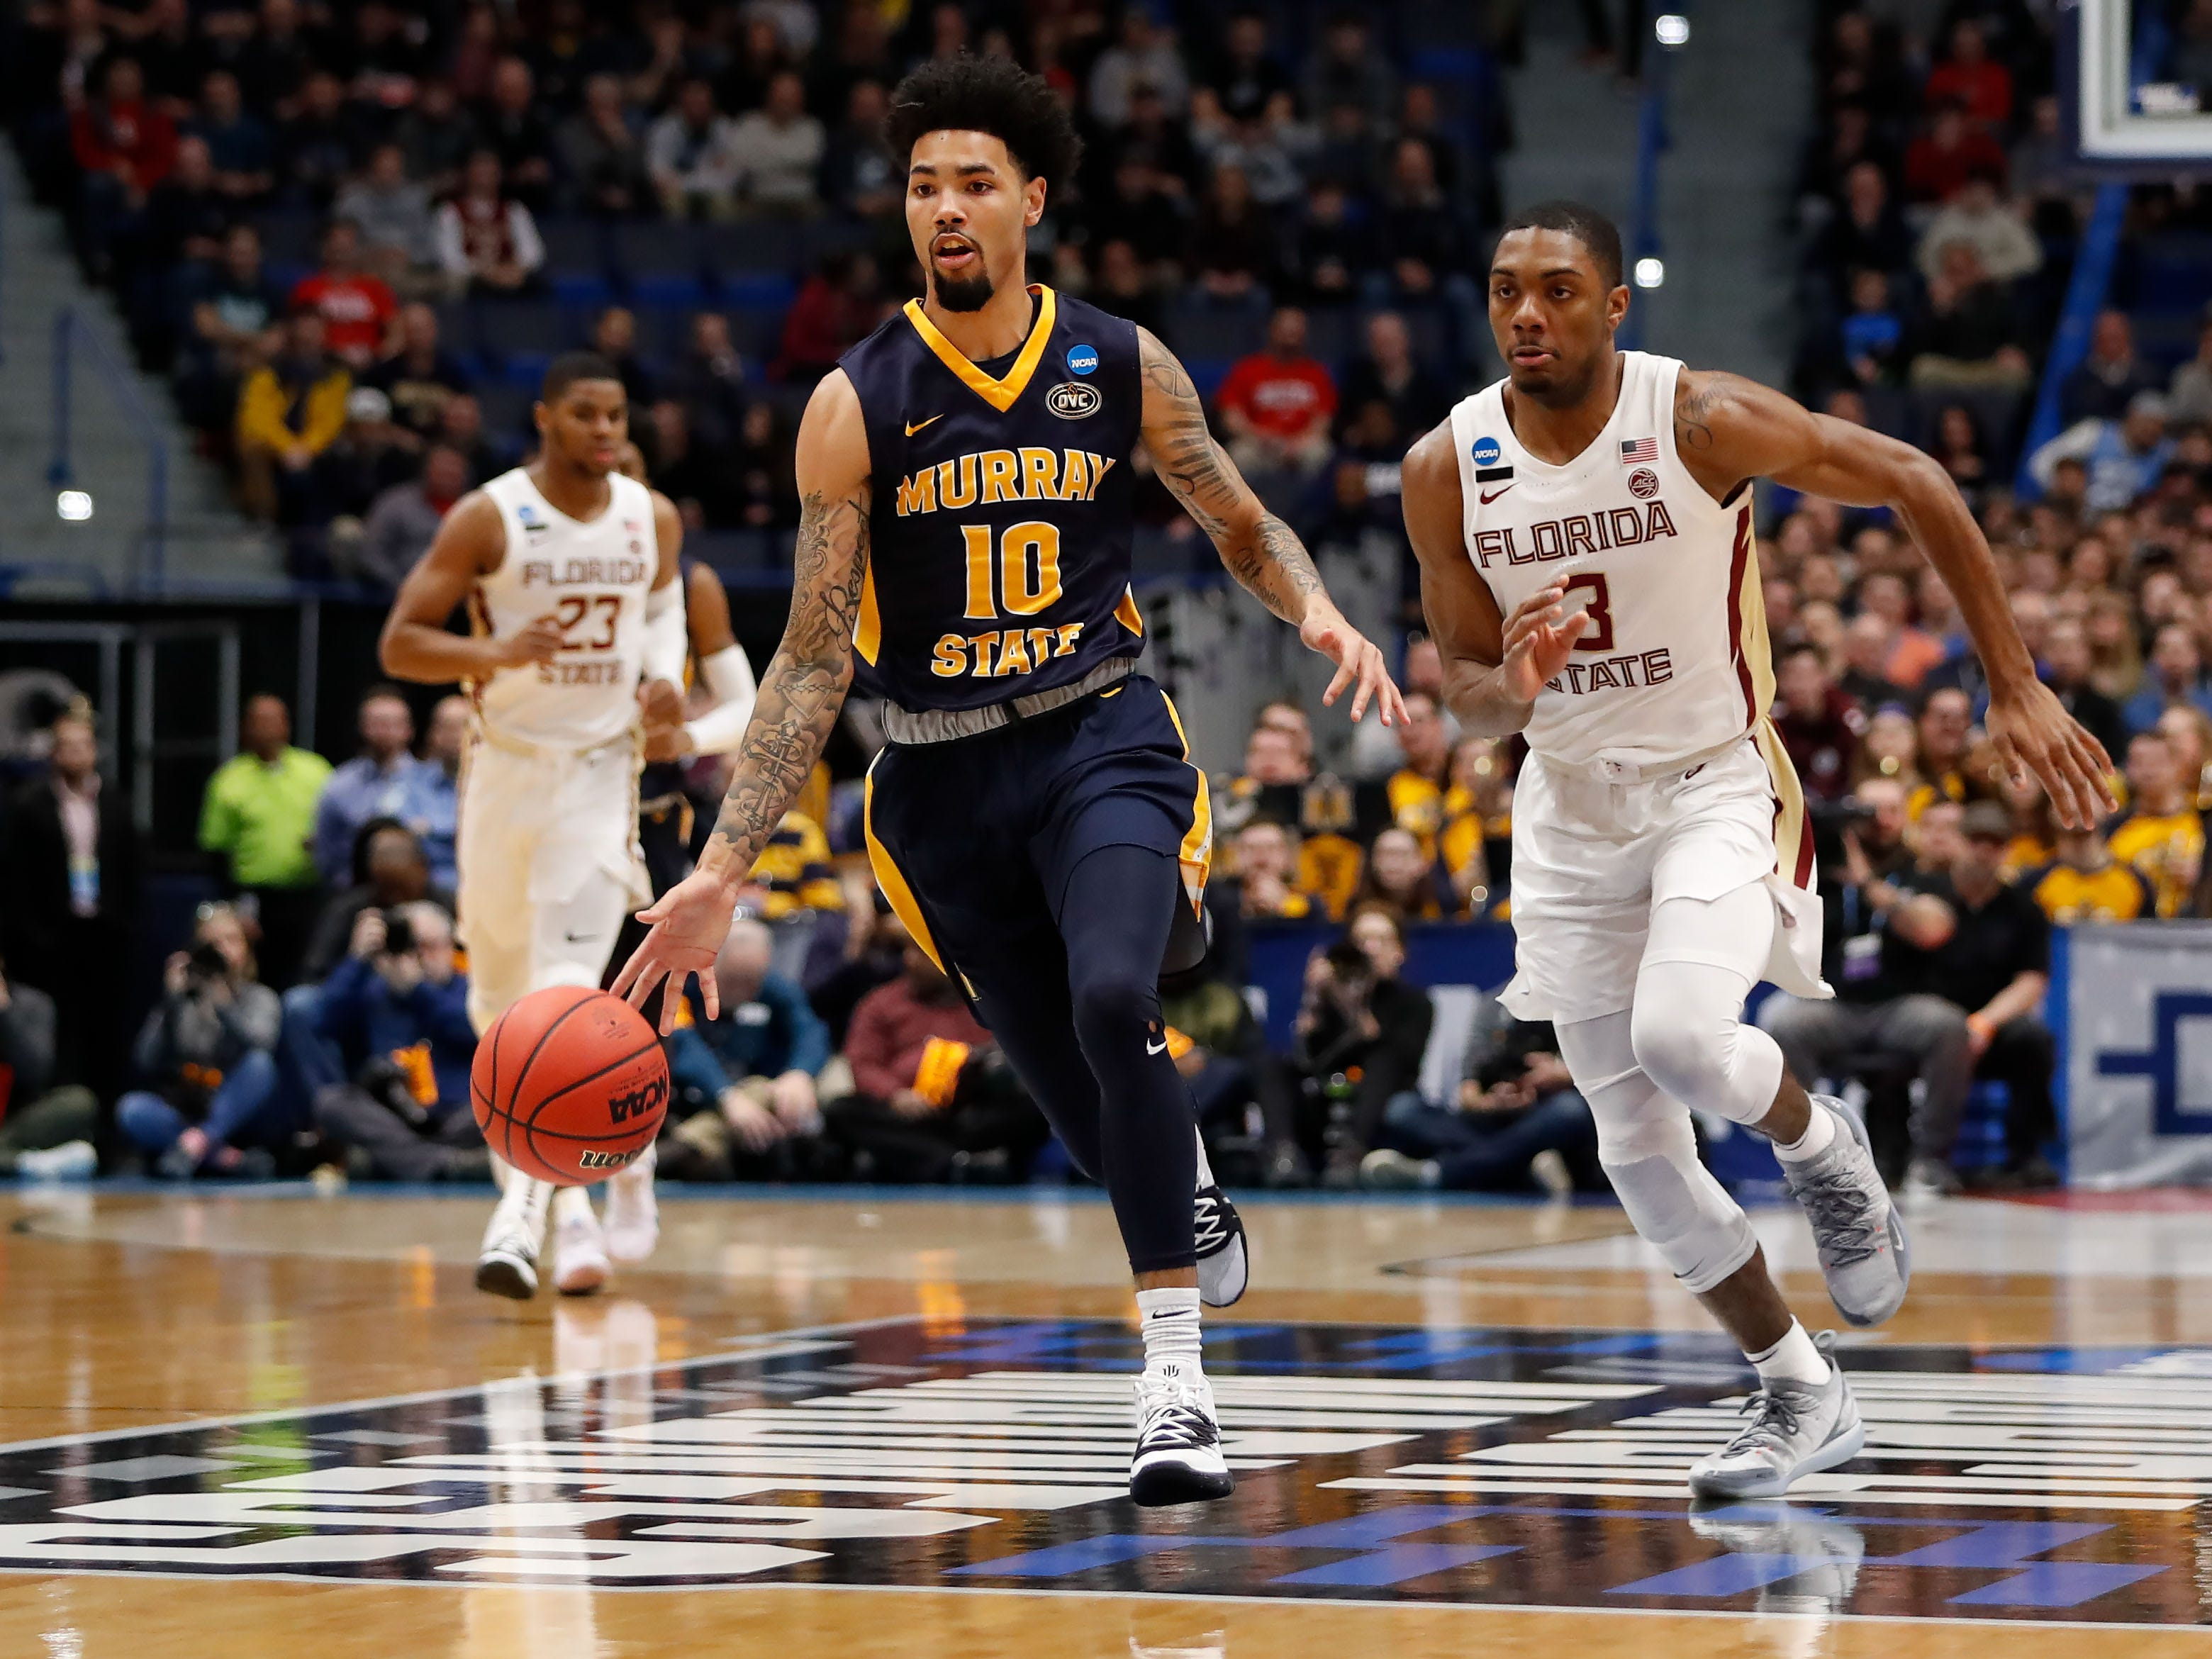 Mar 23, 2019; Hartford, CT, USA; Murray State Racers guard Tevin Brown (10) dribbles the ball up the court in front of Florida State Seminoles guard Trent Forrest (3) during the first half of a game in the second round of the 2019 NCAA Tournament at XL Center. Mandatory Credit: David Butler II-USA TODAY Sports